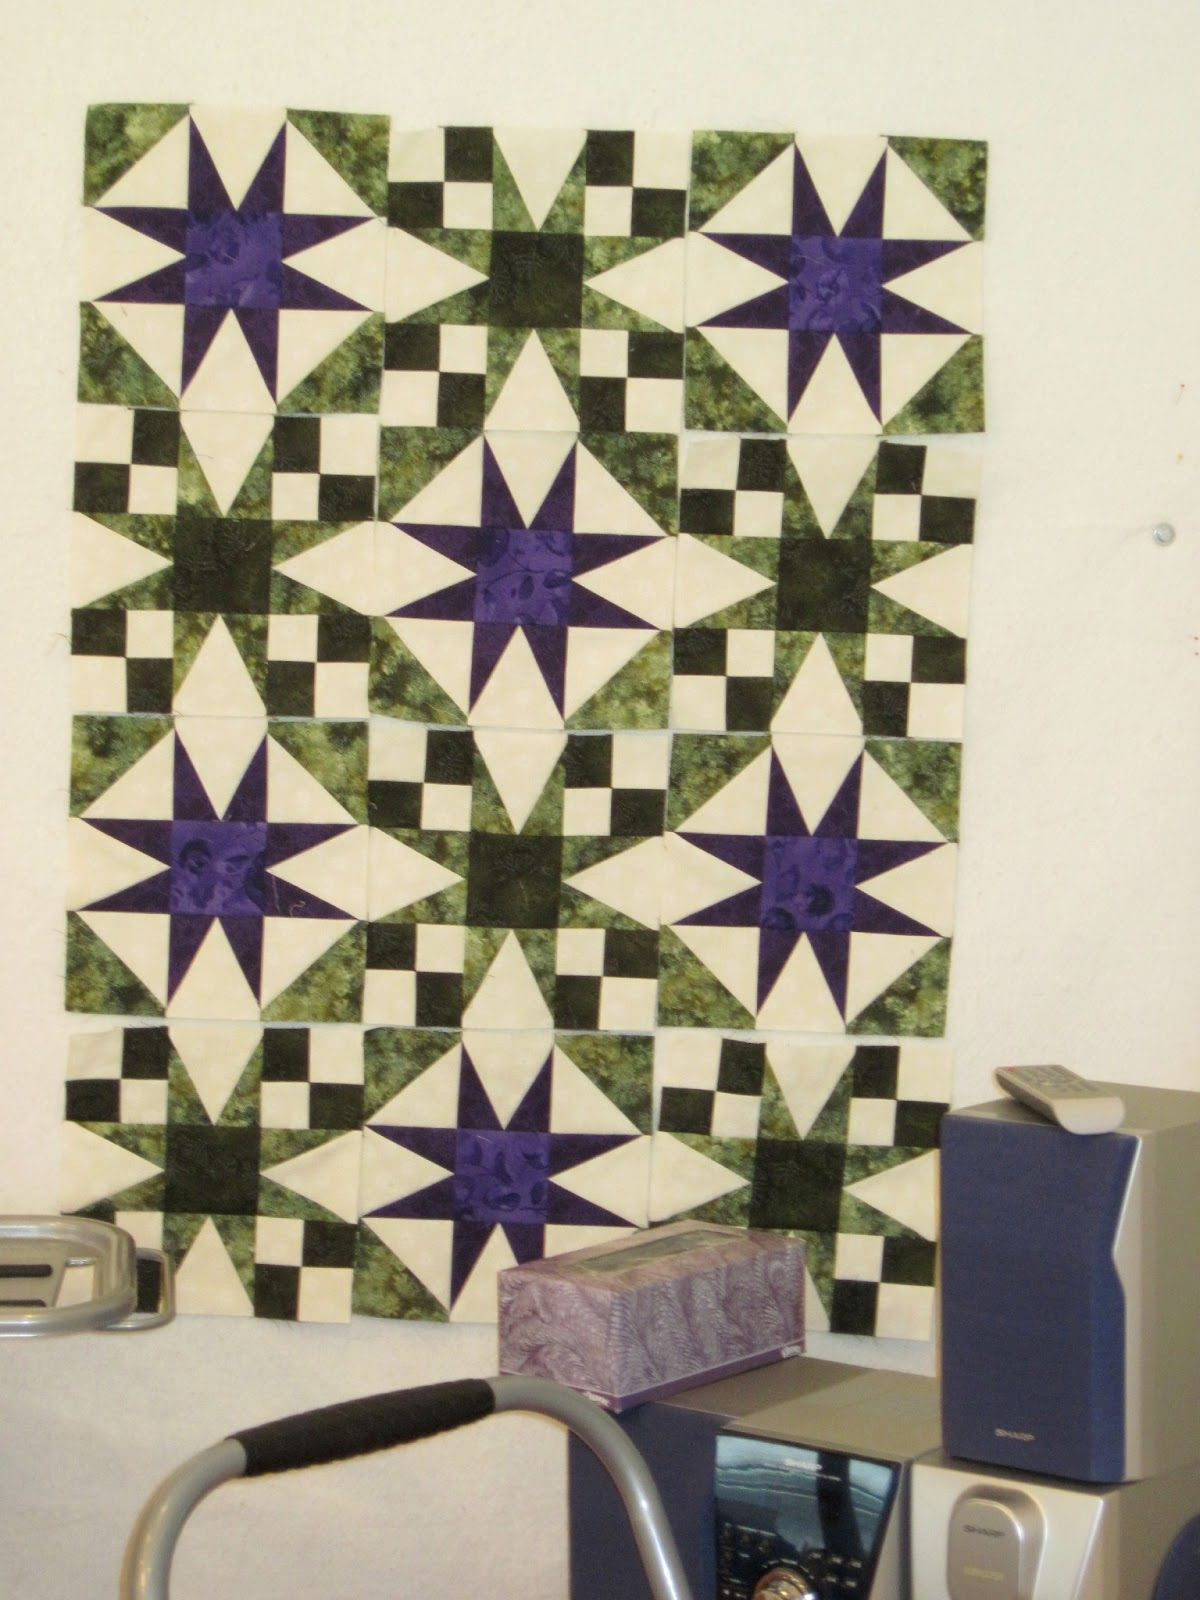 galaxy quilt pattern deb tucker - shown in several color ideas